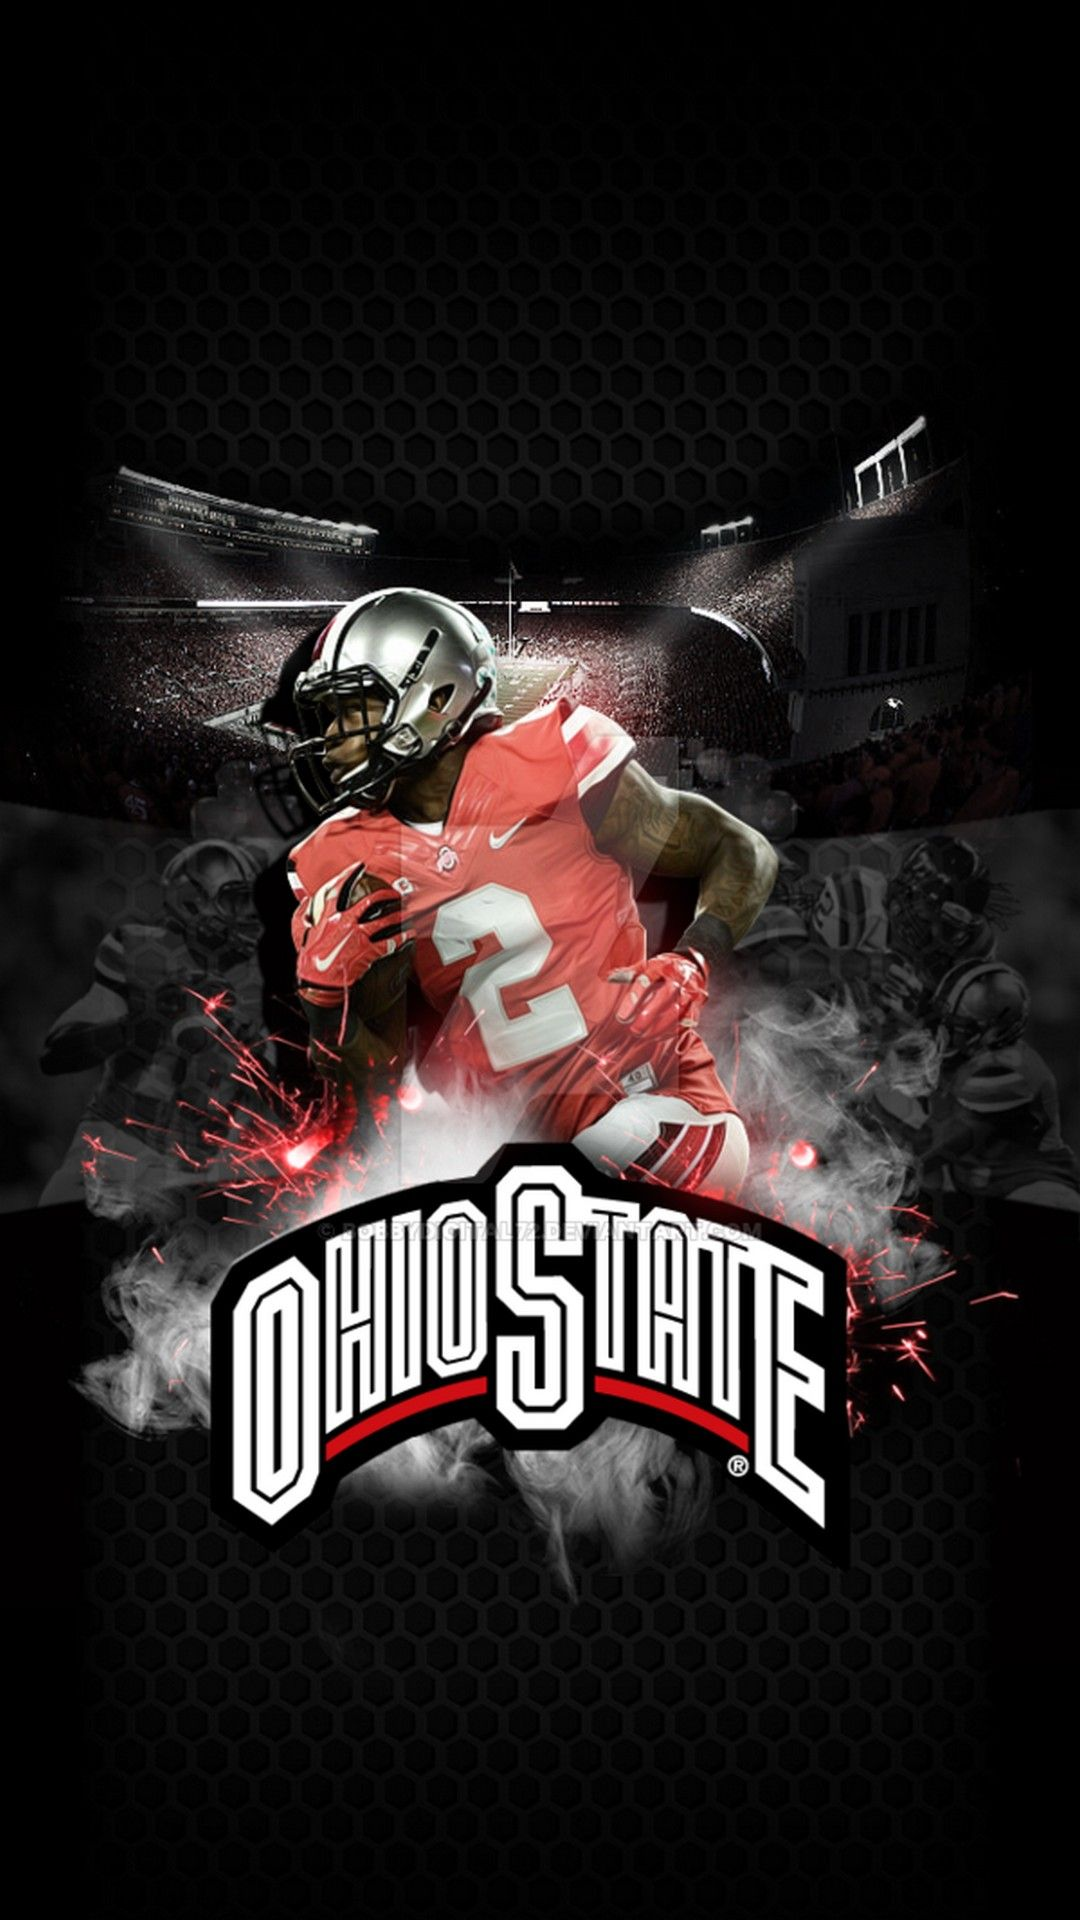 Ohio State Wallpaper For Iphone Best Iphone Wallpaper Ohio State Wallpaper Ohio State Buckeyes Football Ohio State Football Wallpaper